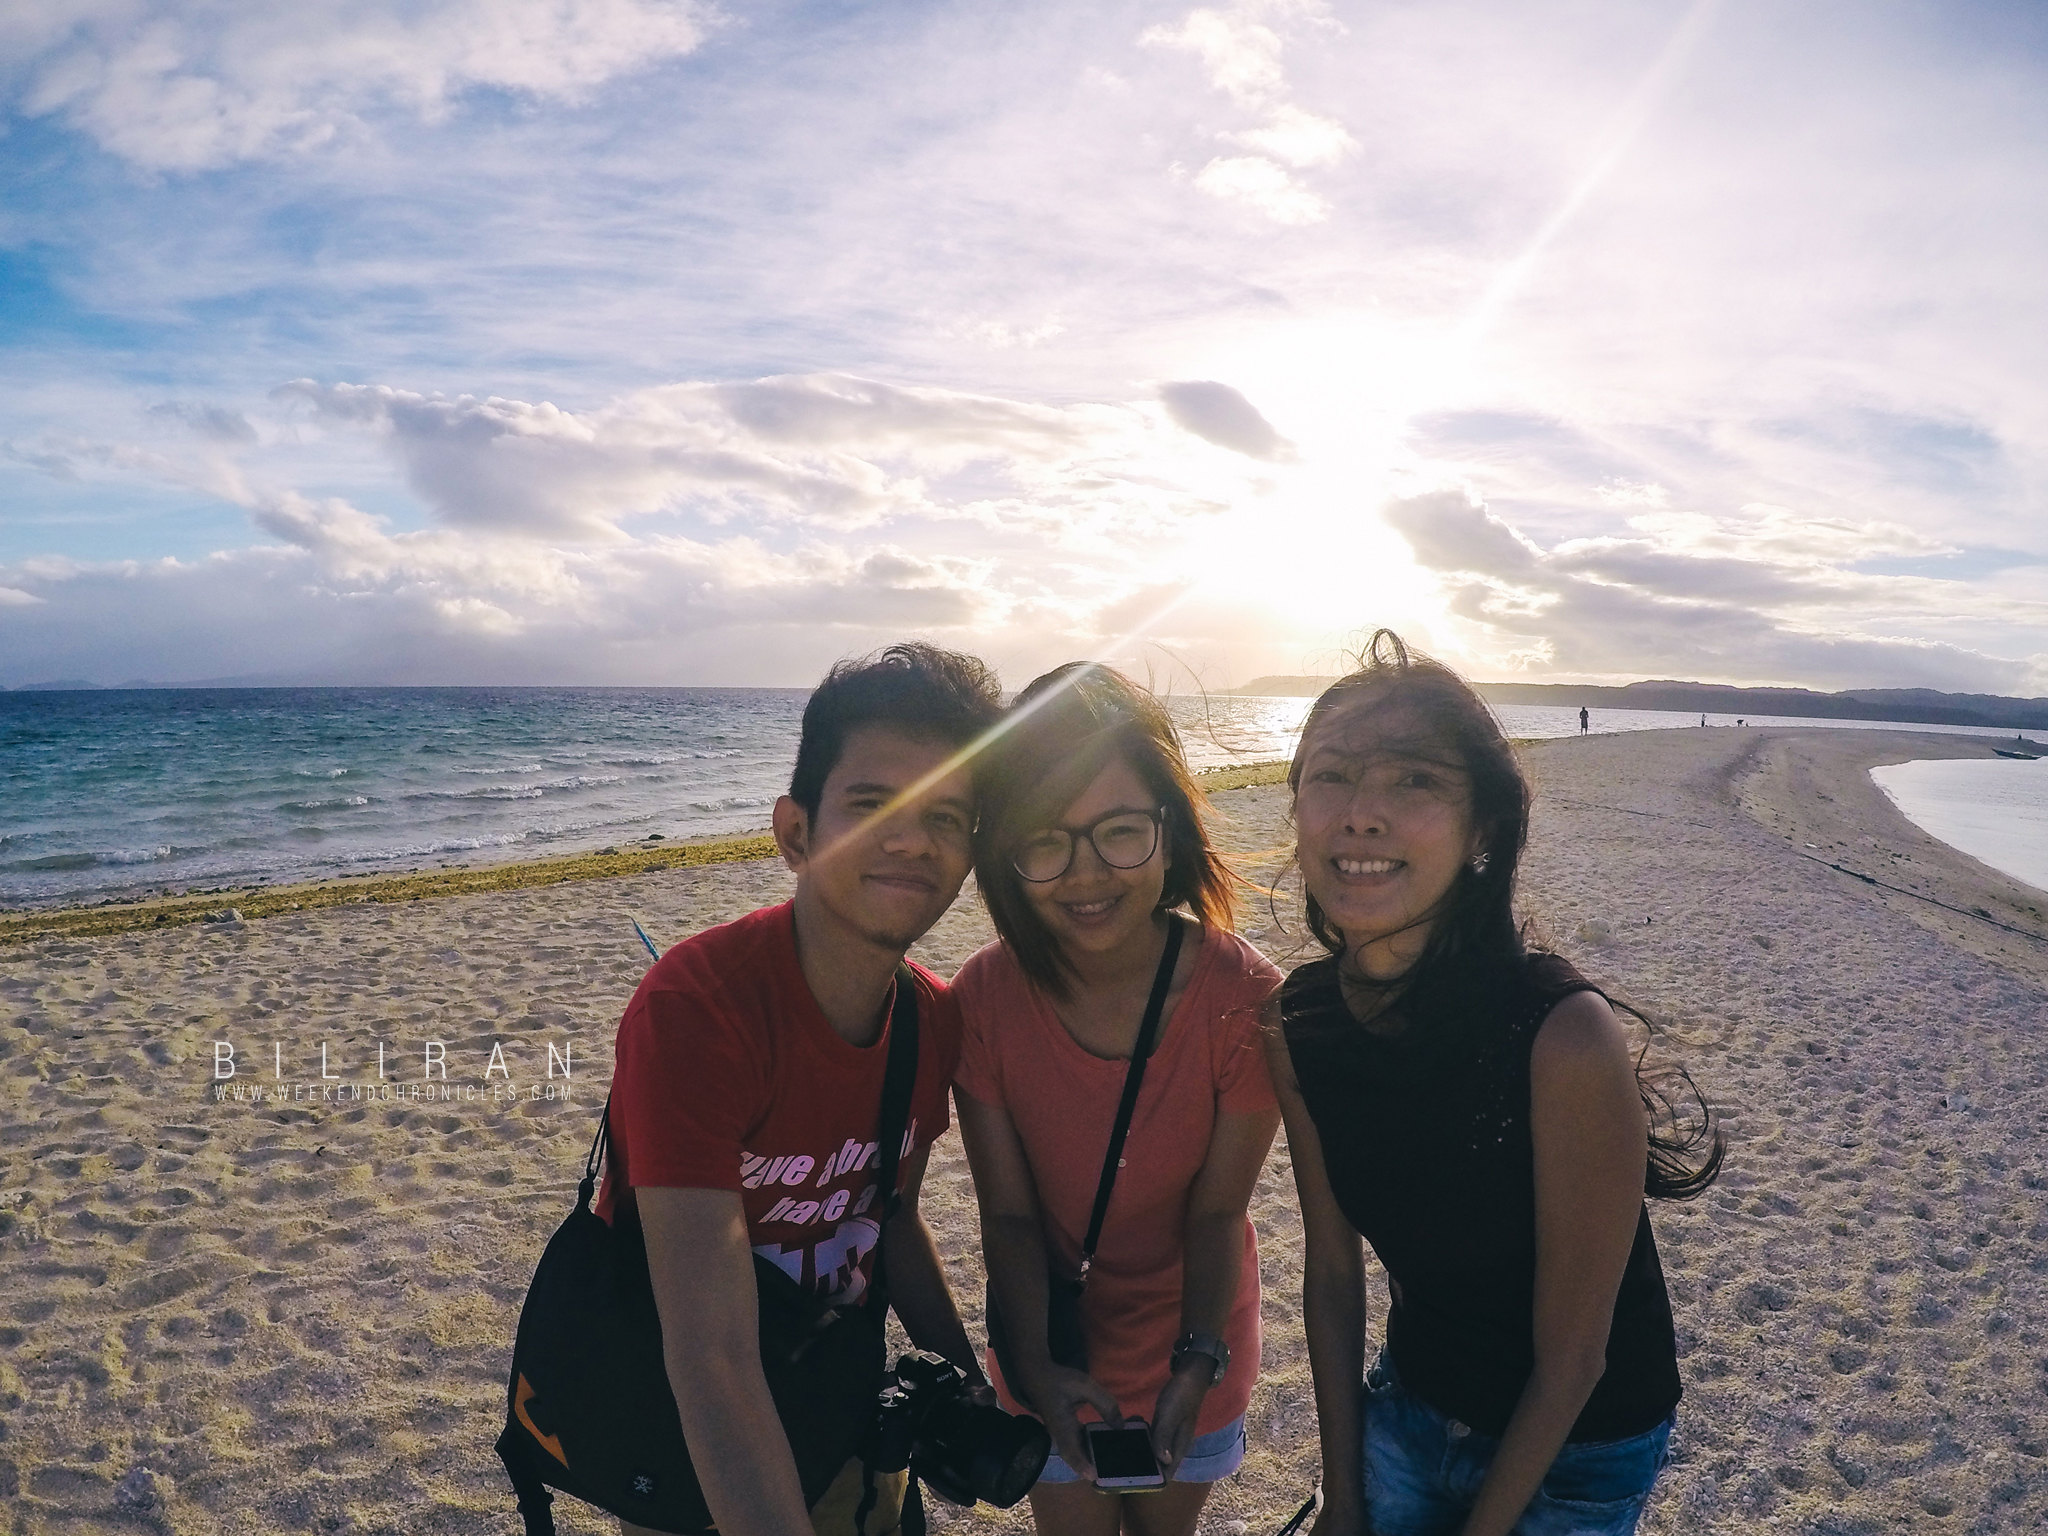 We got to meet Joy, a solo female traveler who's also from Manila but is originally from Visayas. She's a life-saver because she speaks Visayan! She's already been to A LOT of places. She's even been to some parts of the Philippines we wouldn't dare go to.